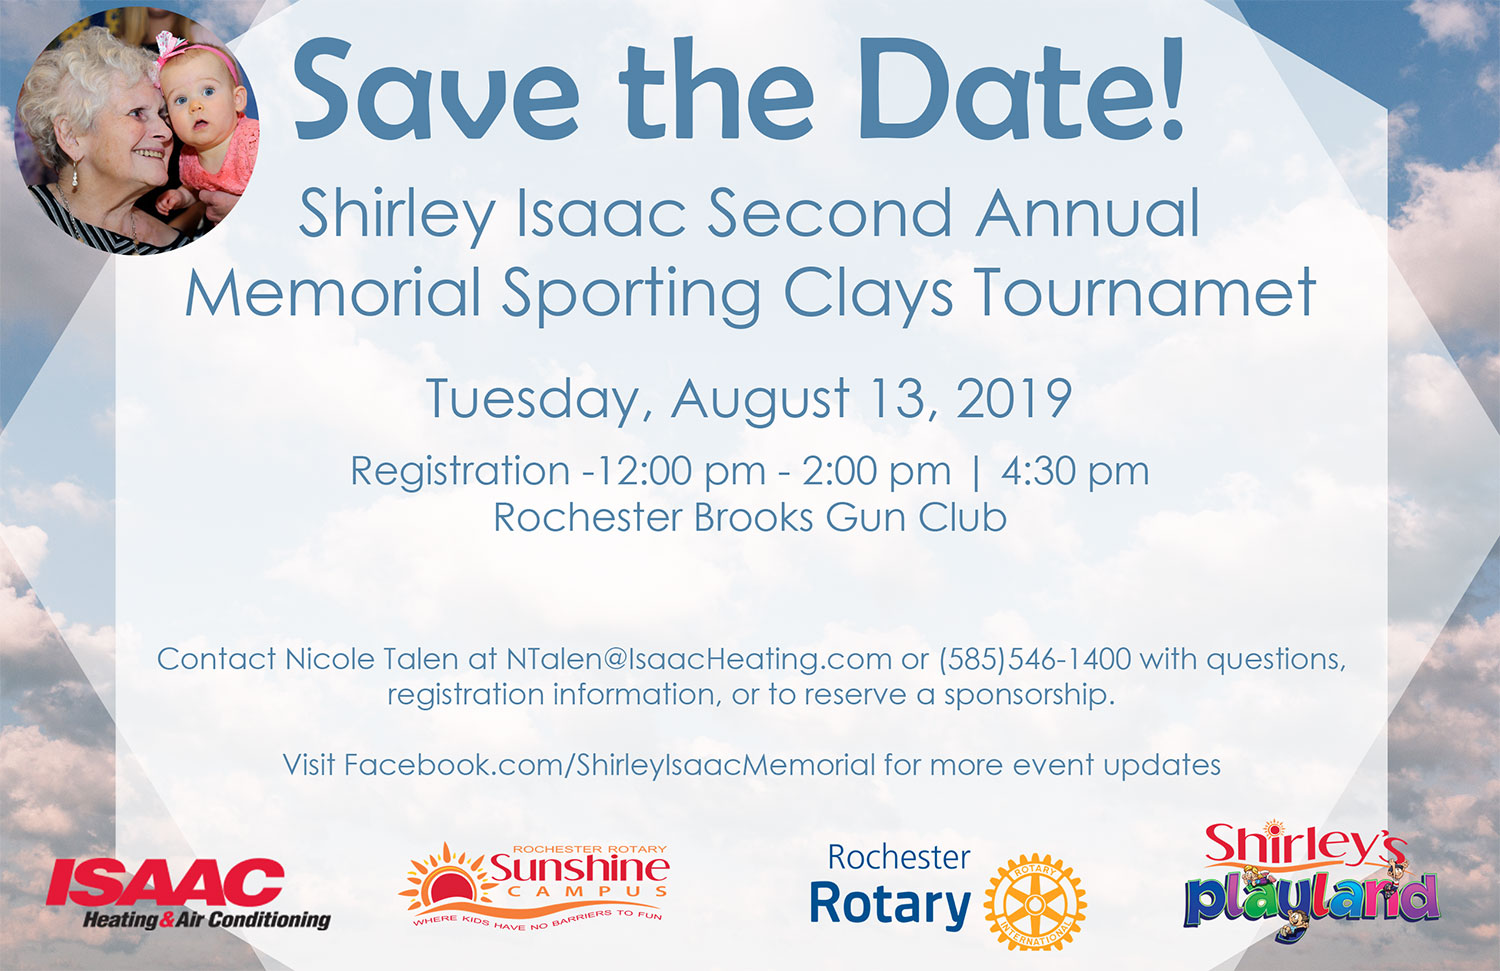 Shirley-shooting-event-save-the-date